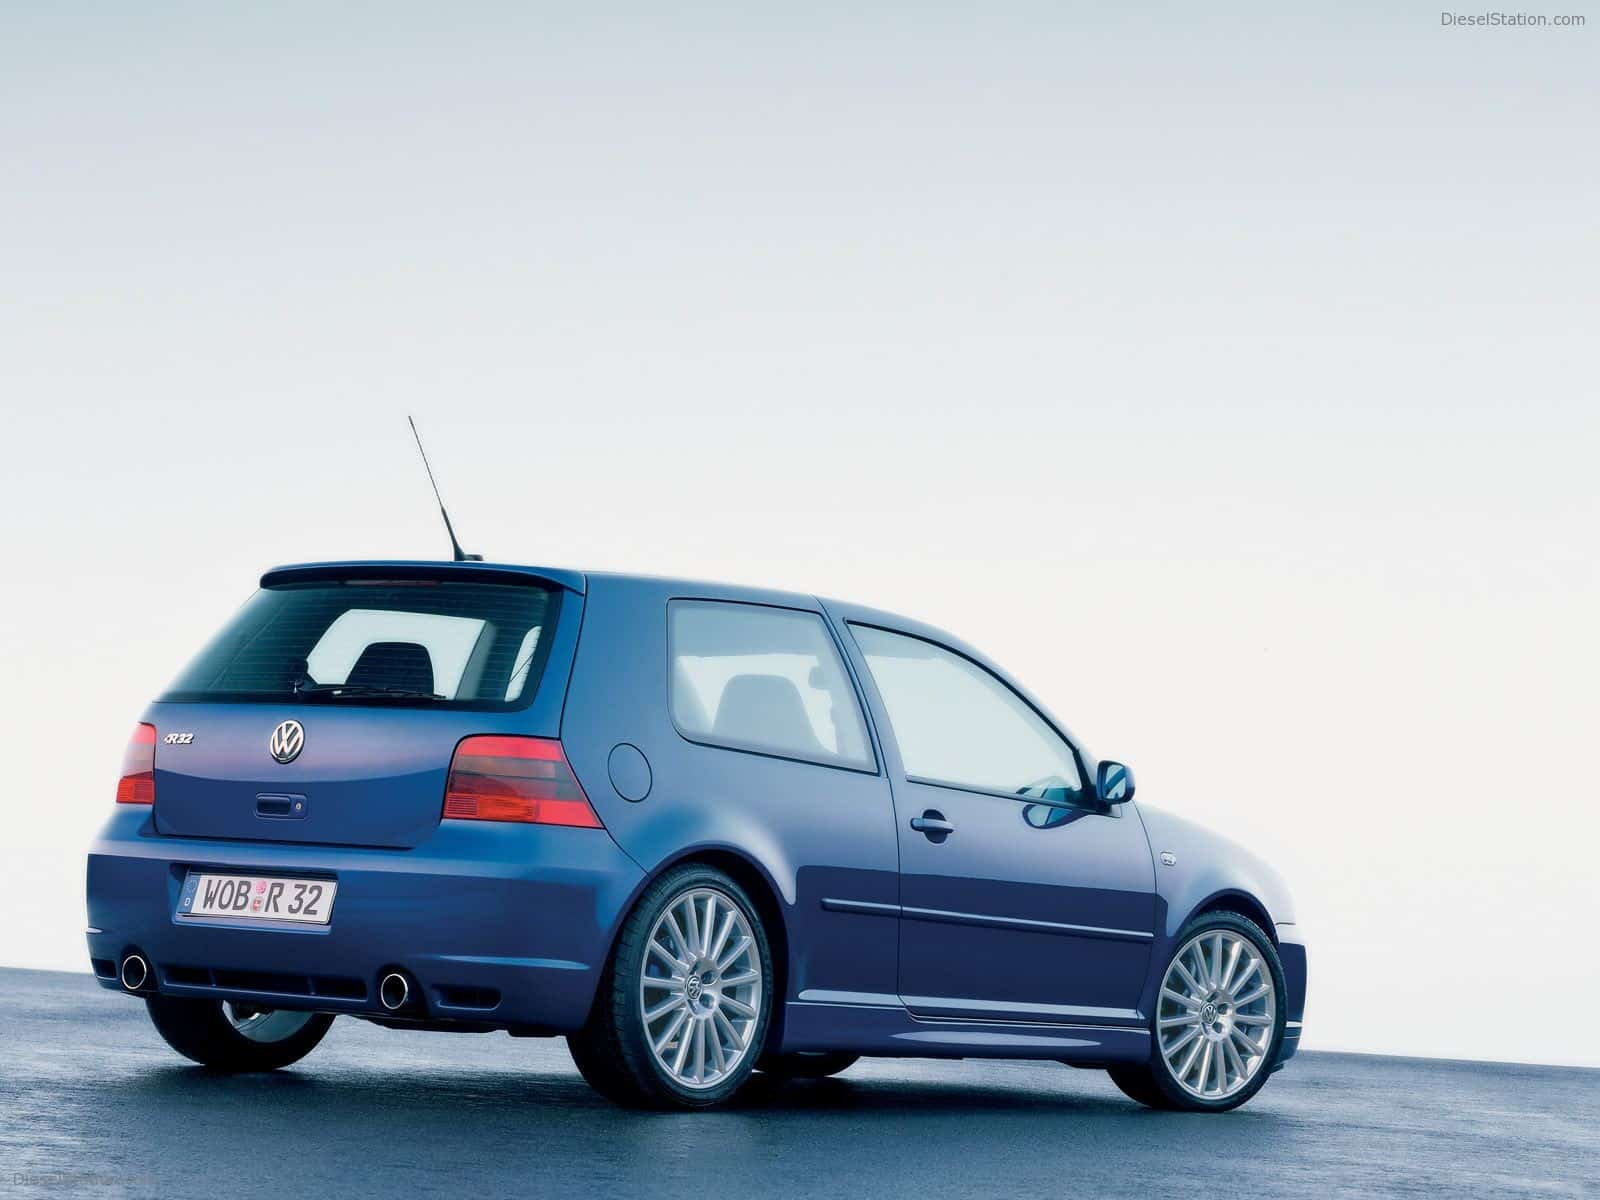 VOLKSWAGEN GOLF IV R32 EXOTIC CAR 8